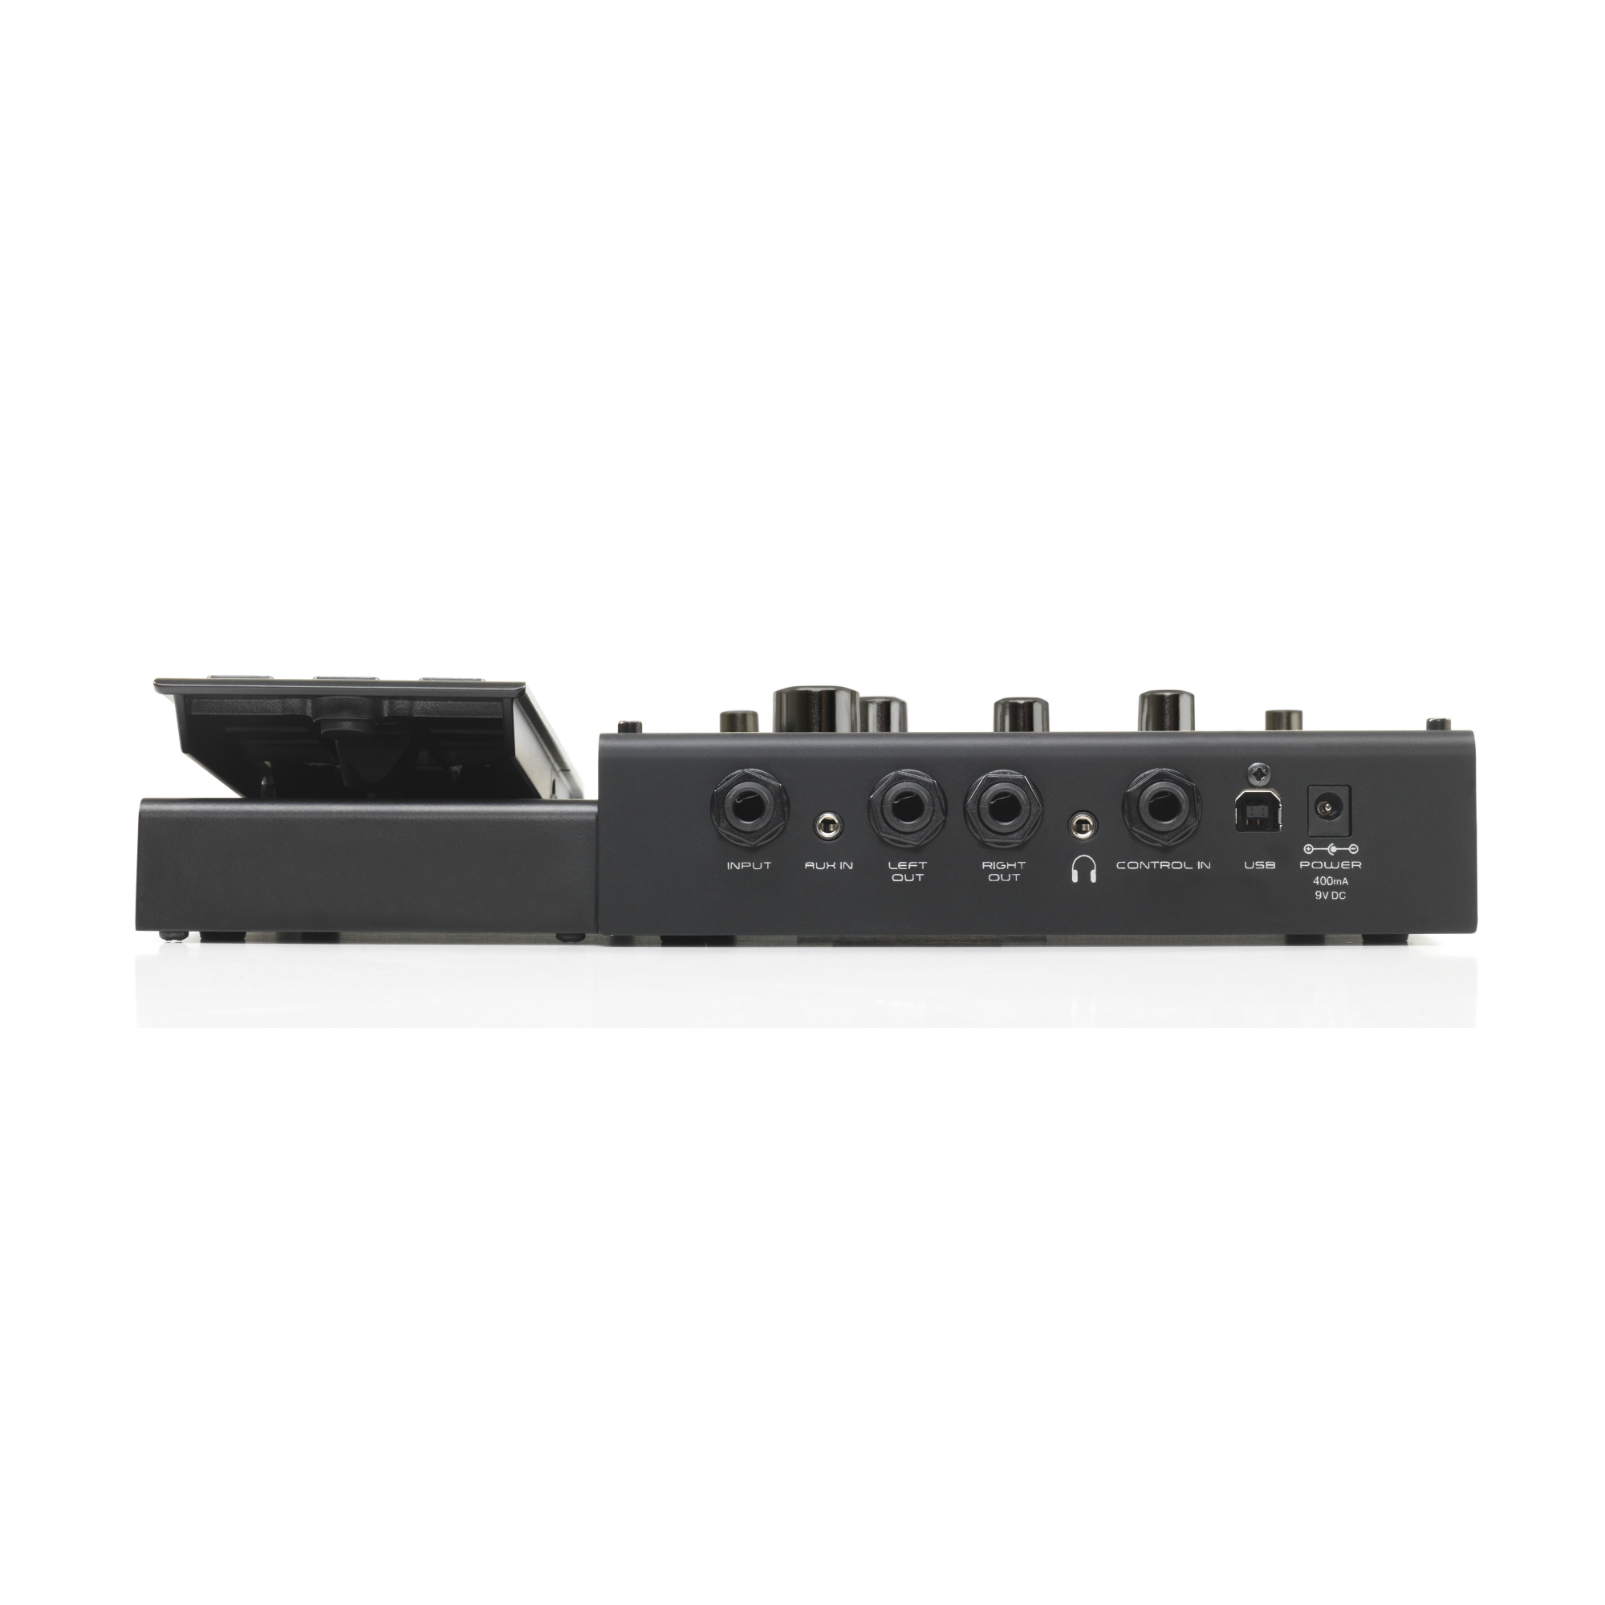 RP360 XP - Black - Guitar Multi-Effect Floor Processor with USB Streaming and Expression Pedal - Back